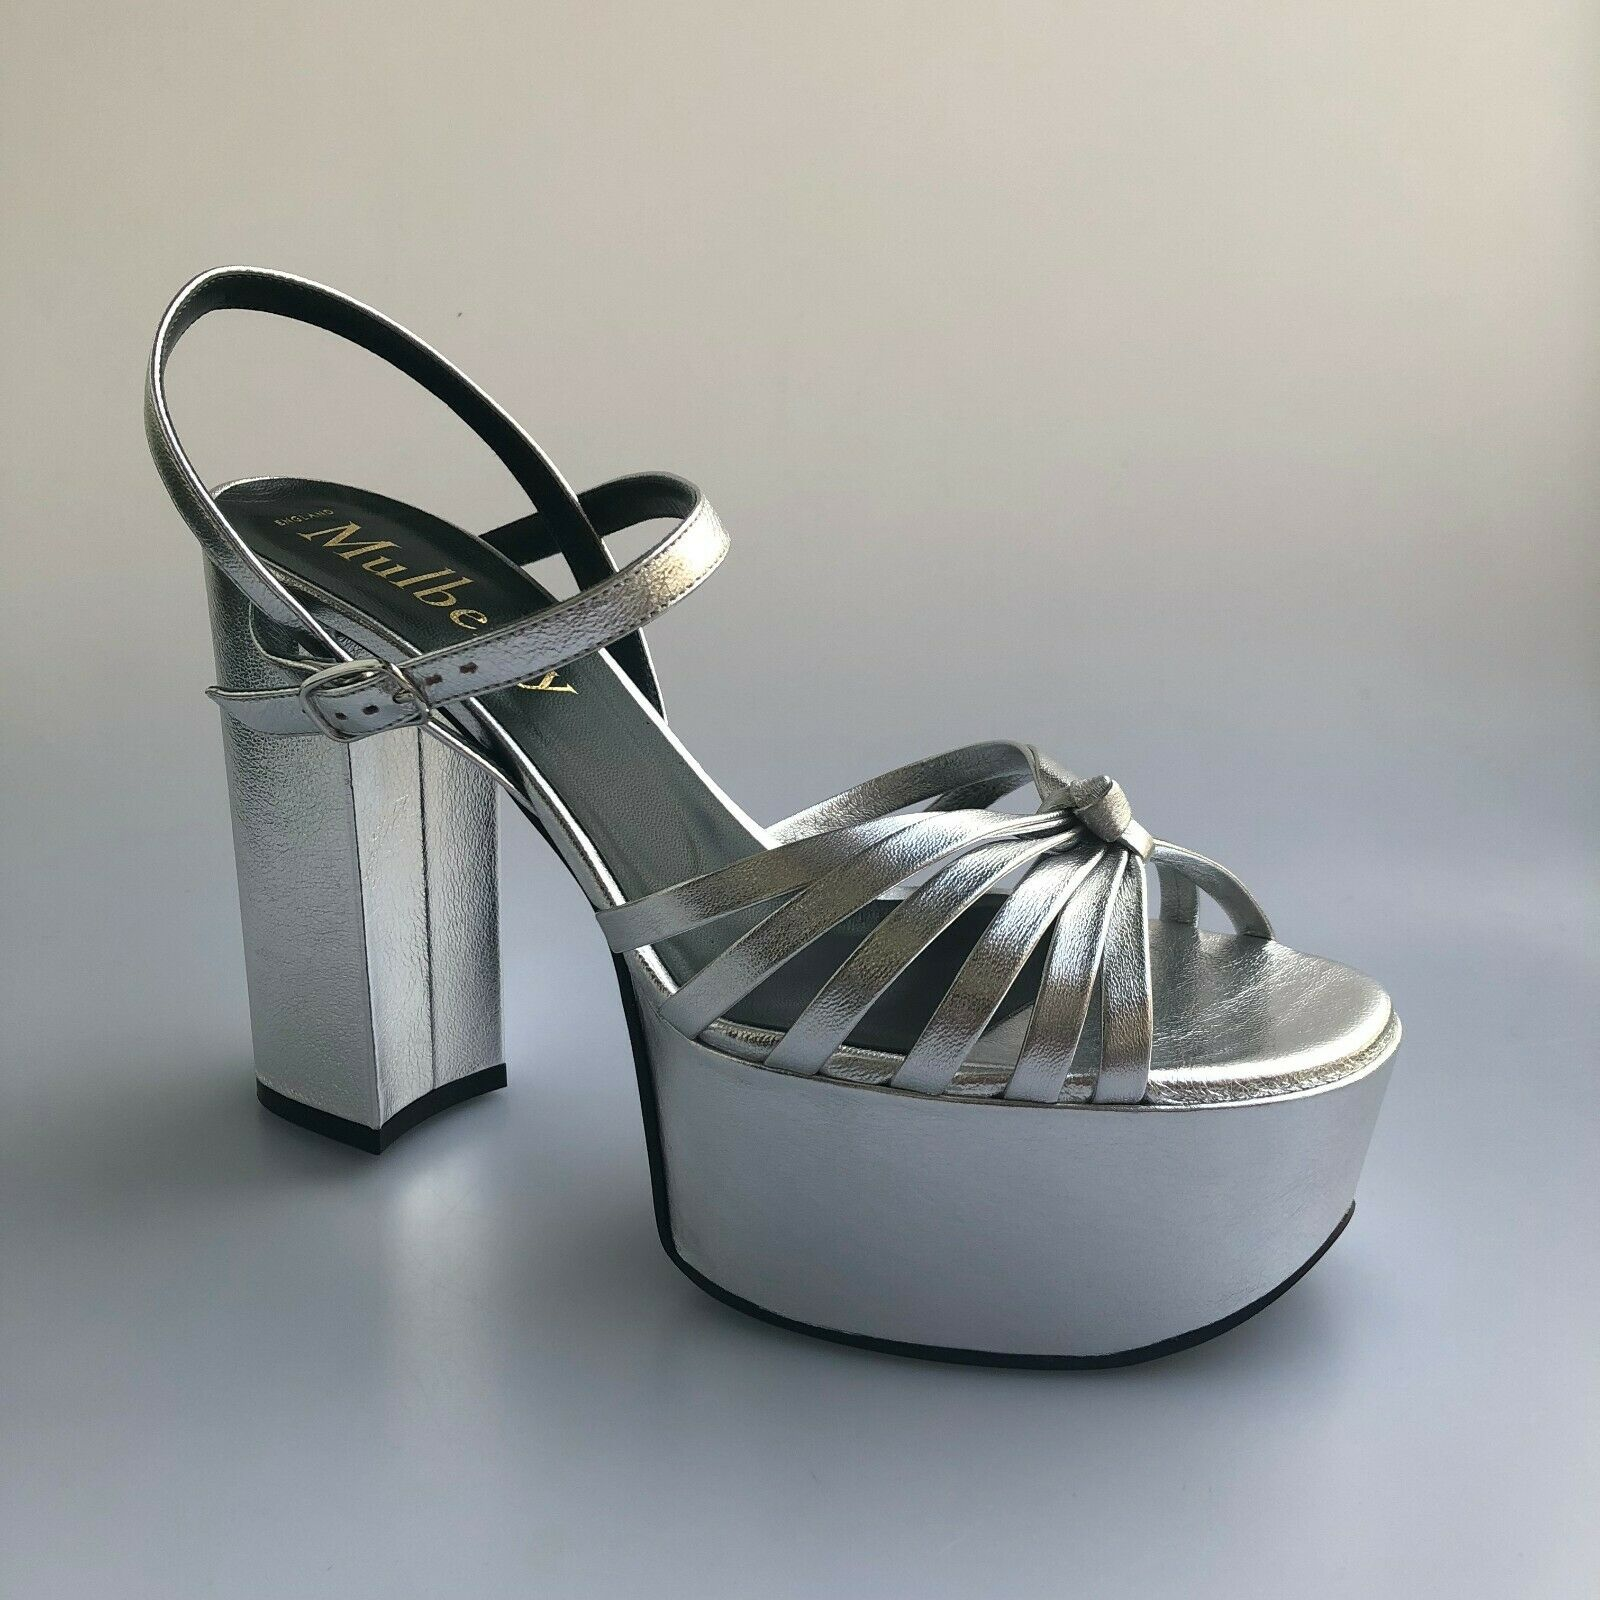 Mulberry Metallic Platform Sandals - Größe EU 38